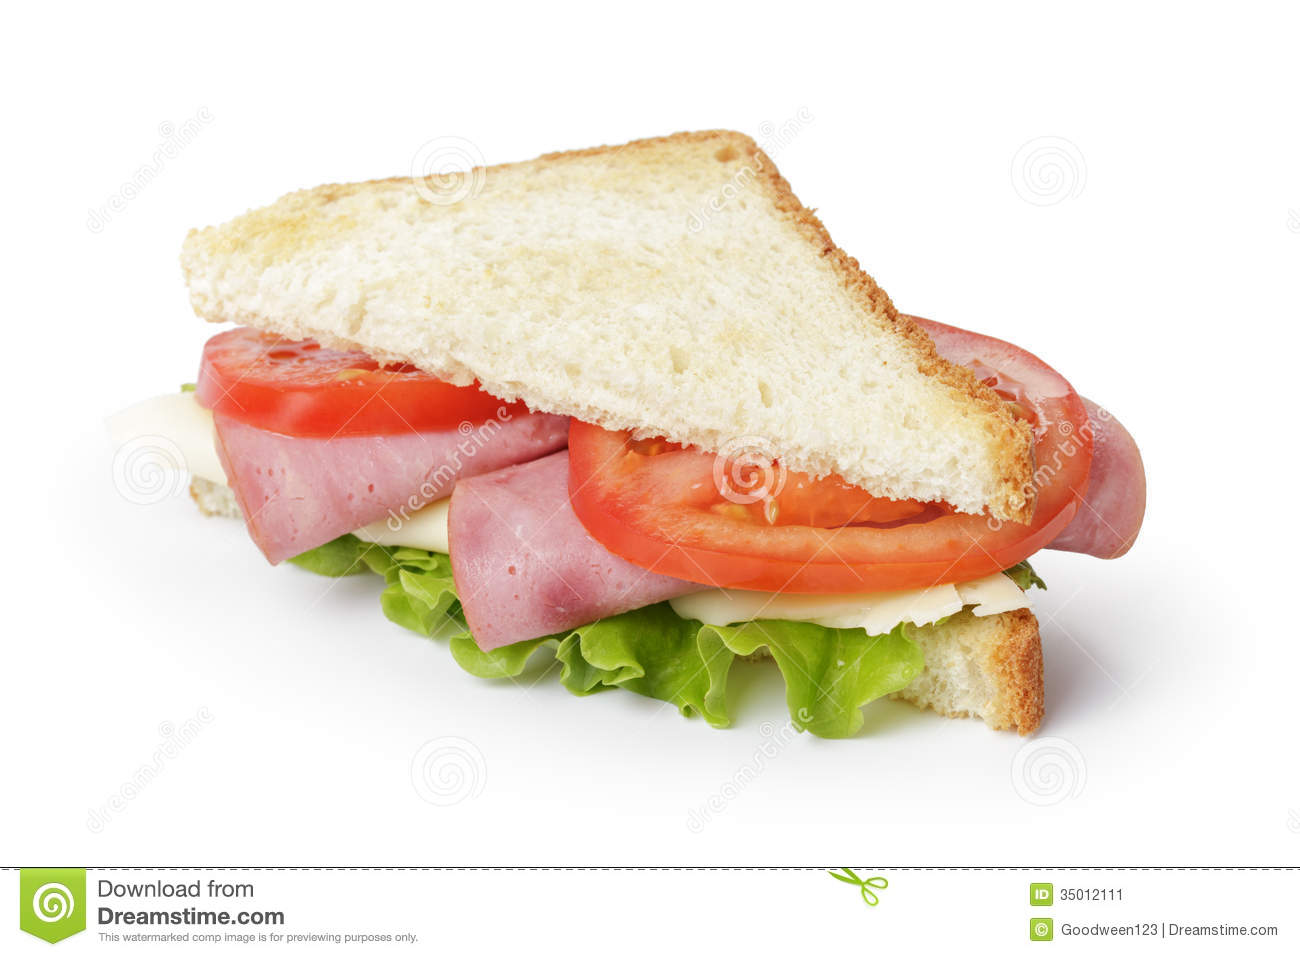 ... Sandwich With Ham, Cheese And Vegetables Stock Image - Image: 35012111